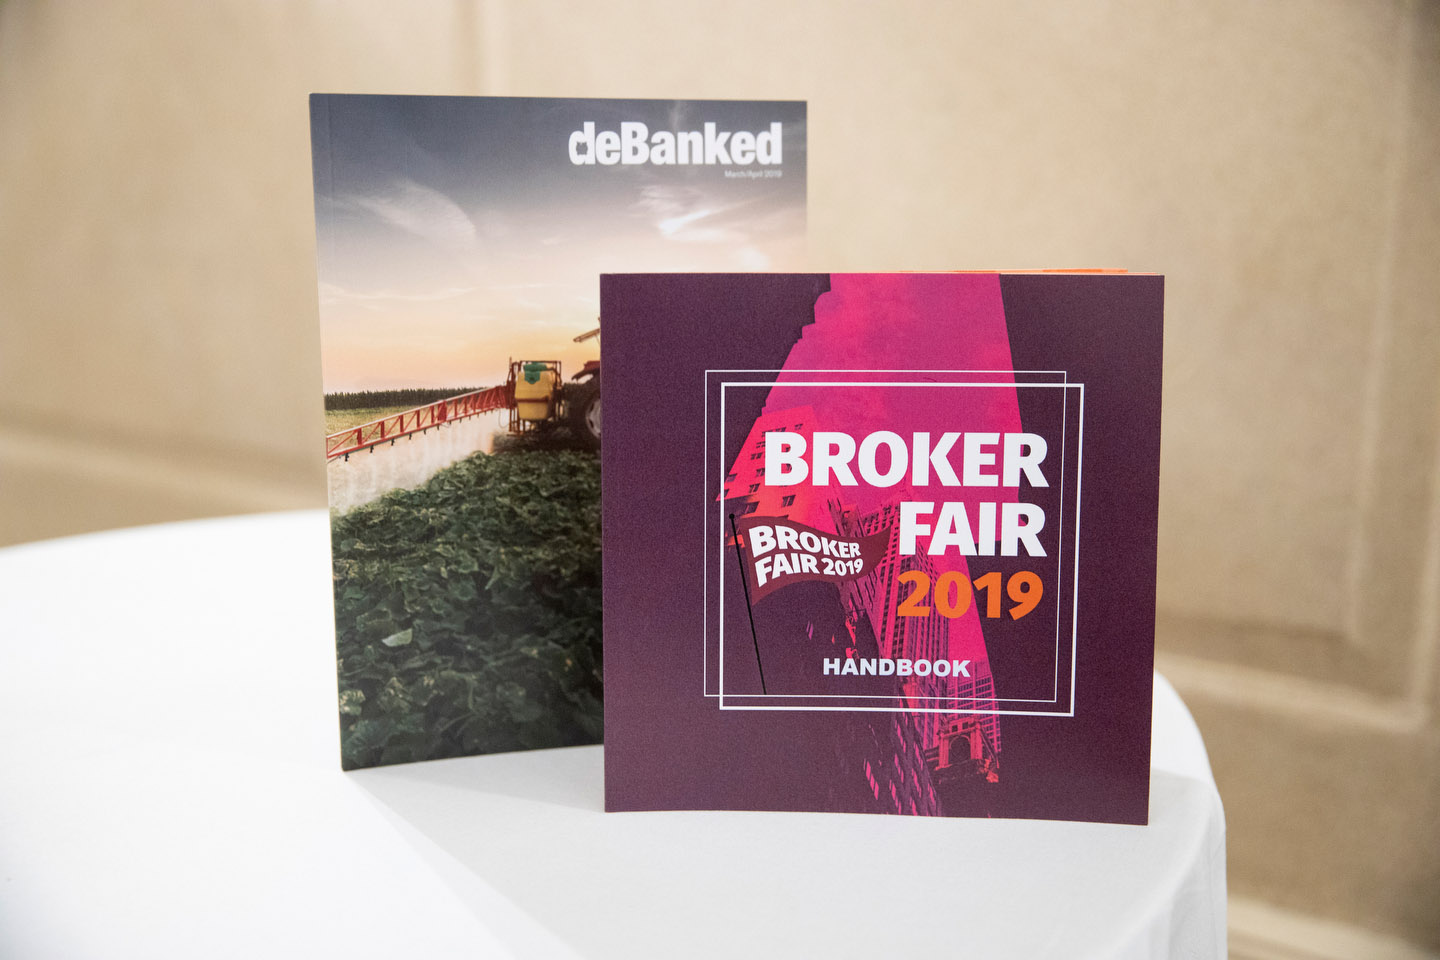 Broker Fair 2019 - Presented by deBanked - 274